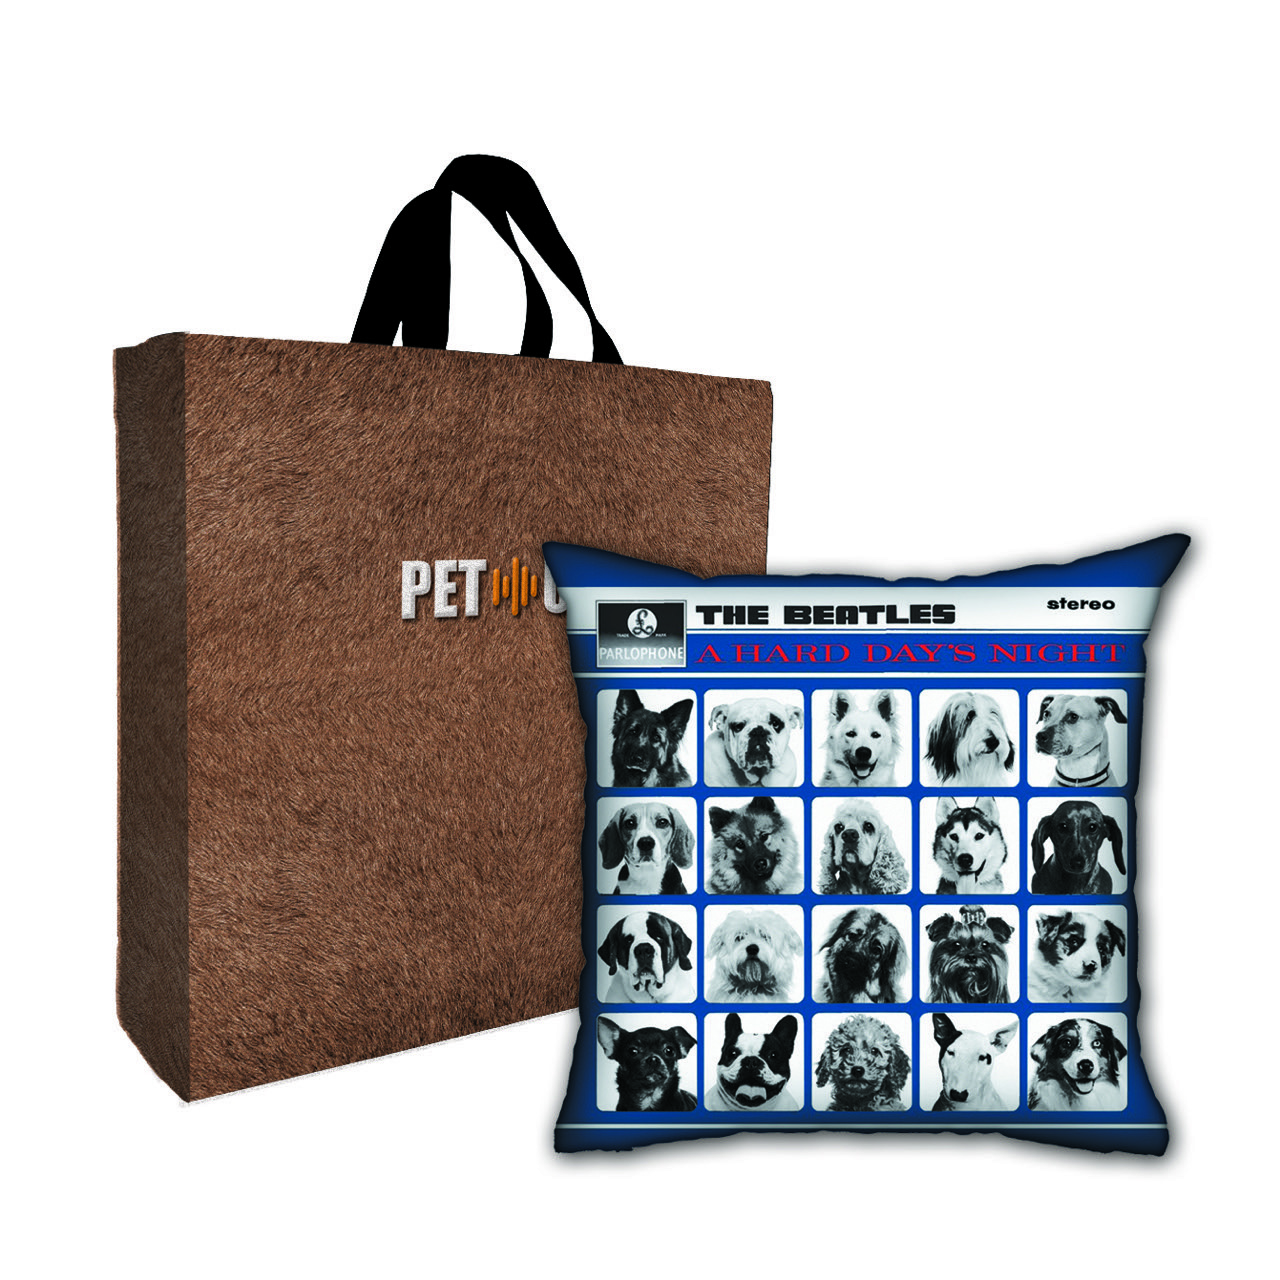 Kit Almofada & Sacola Bege Pet Use - A Dog Days Night - Cachorros